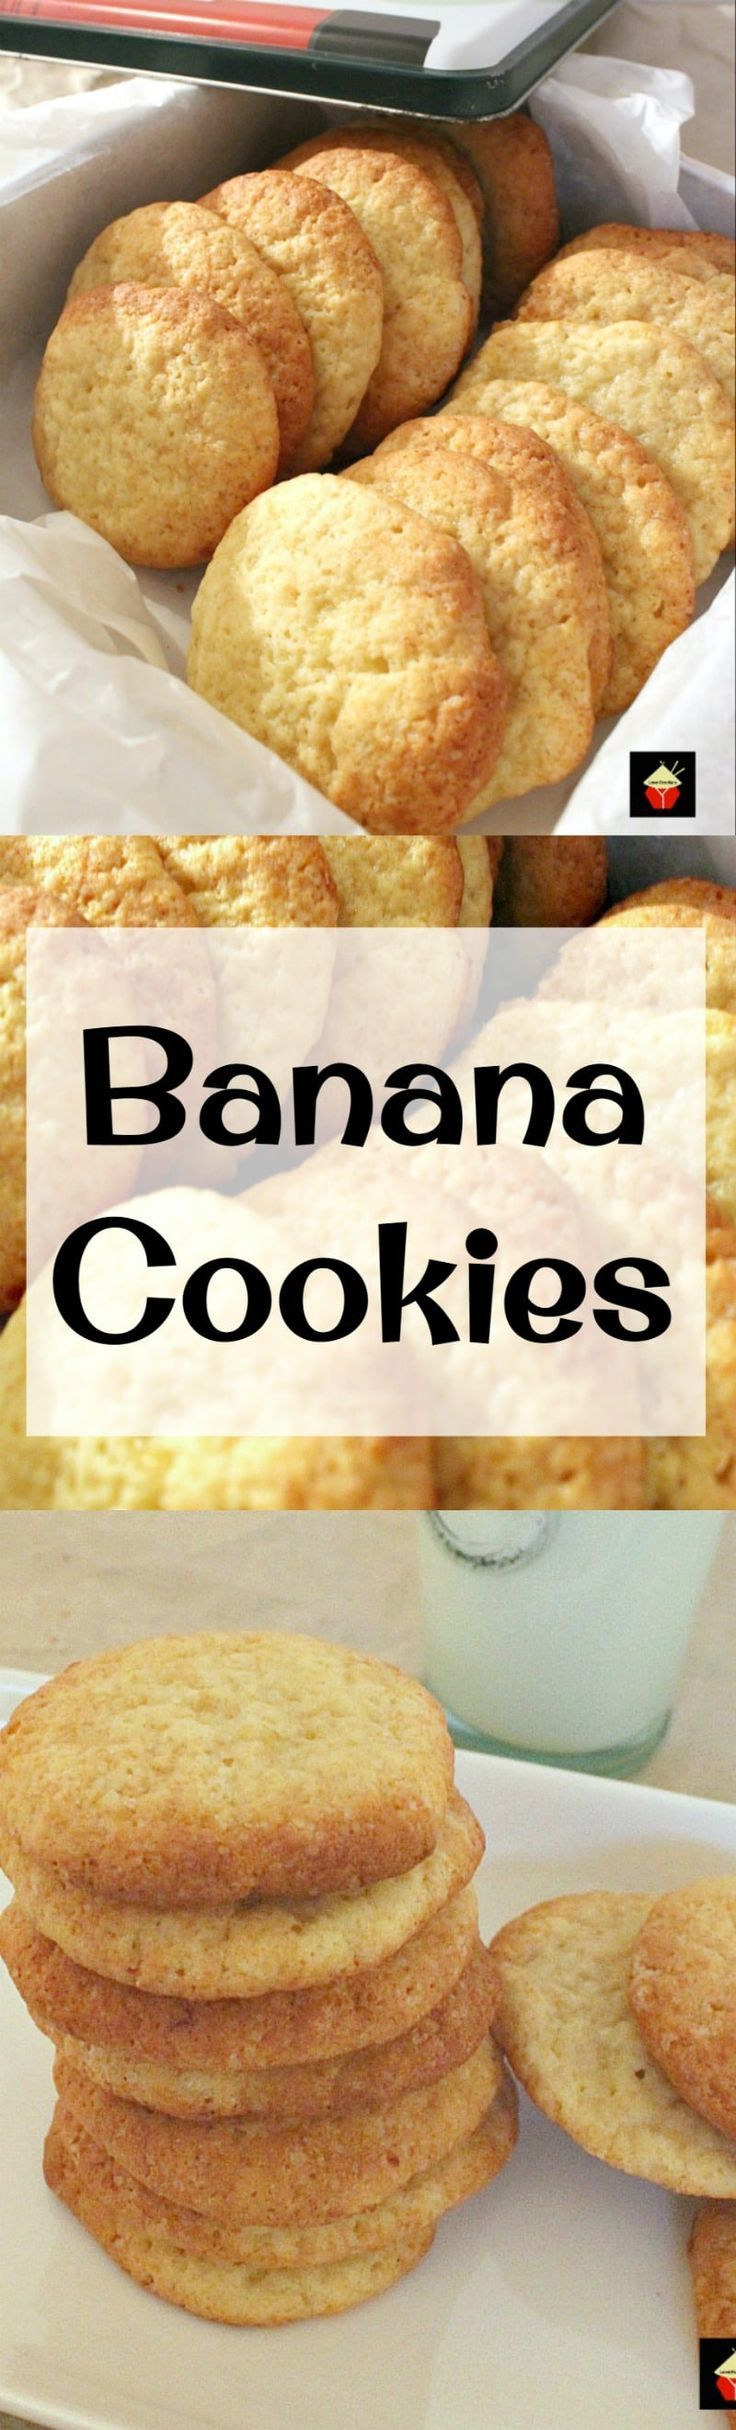 Banana Drop Cookies. Theses are a light fluffy cookie and great for using up those overripe bananas! Easy recipe too! | http://Lovefoodies.com